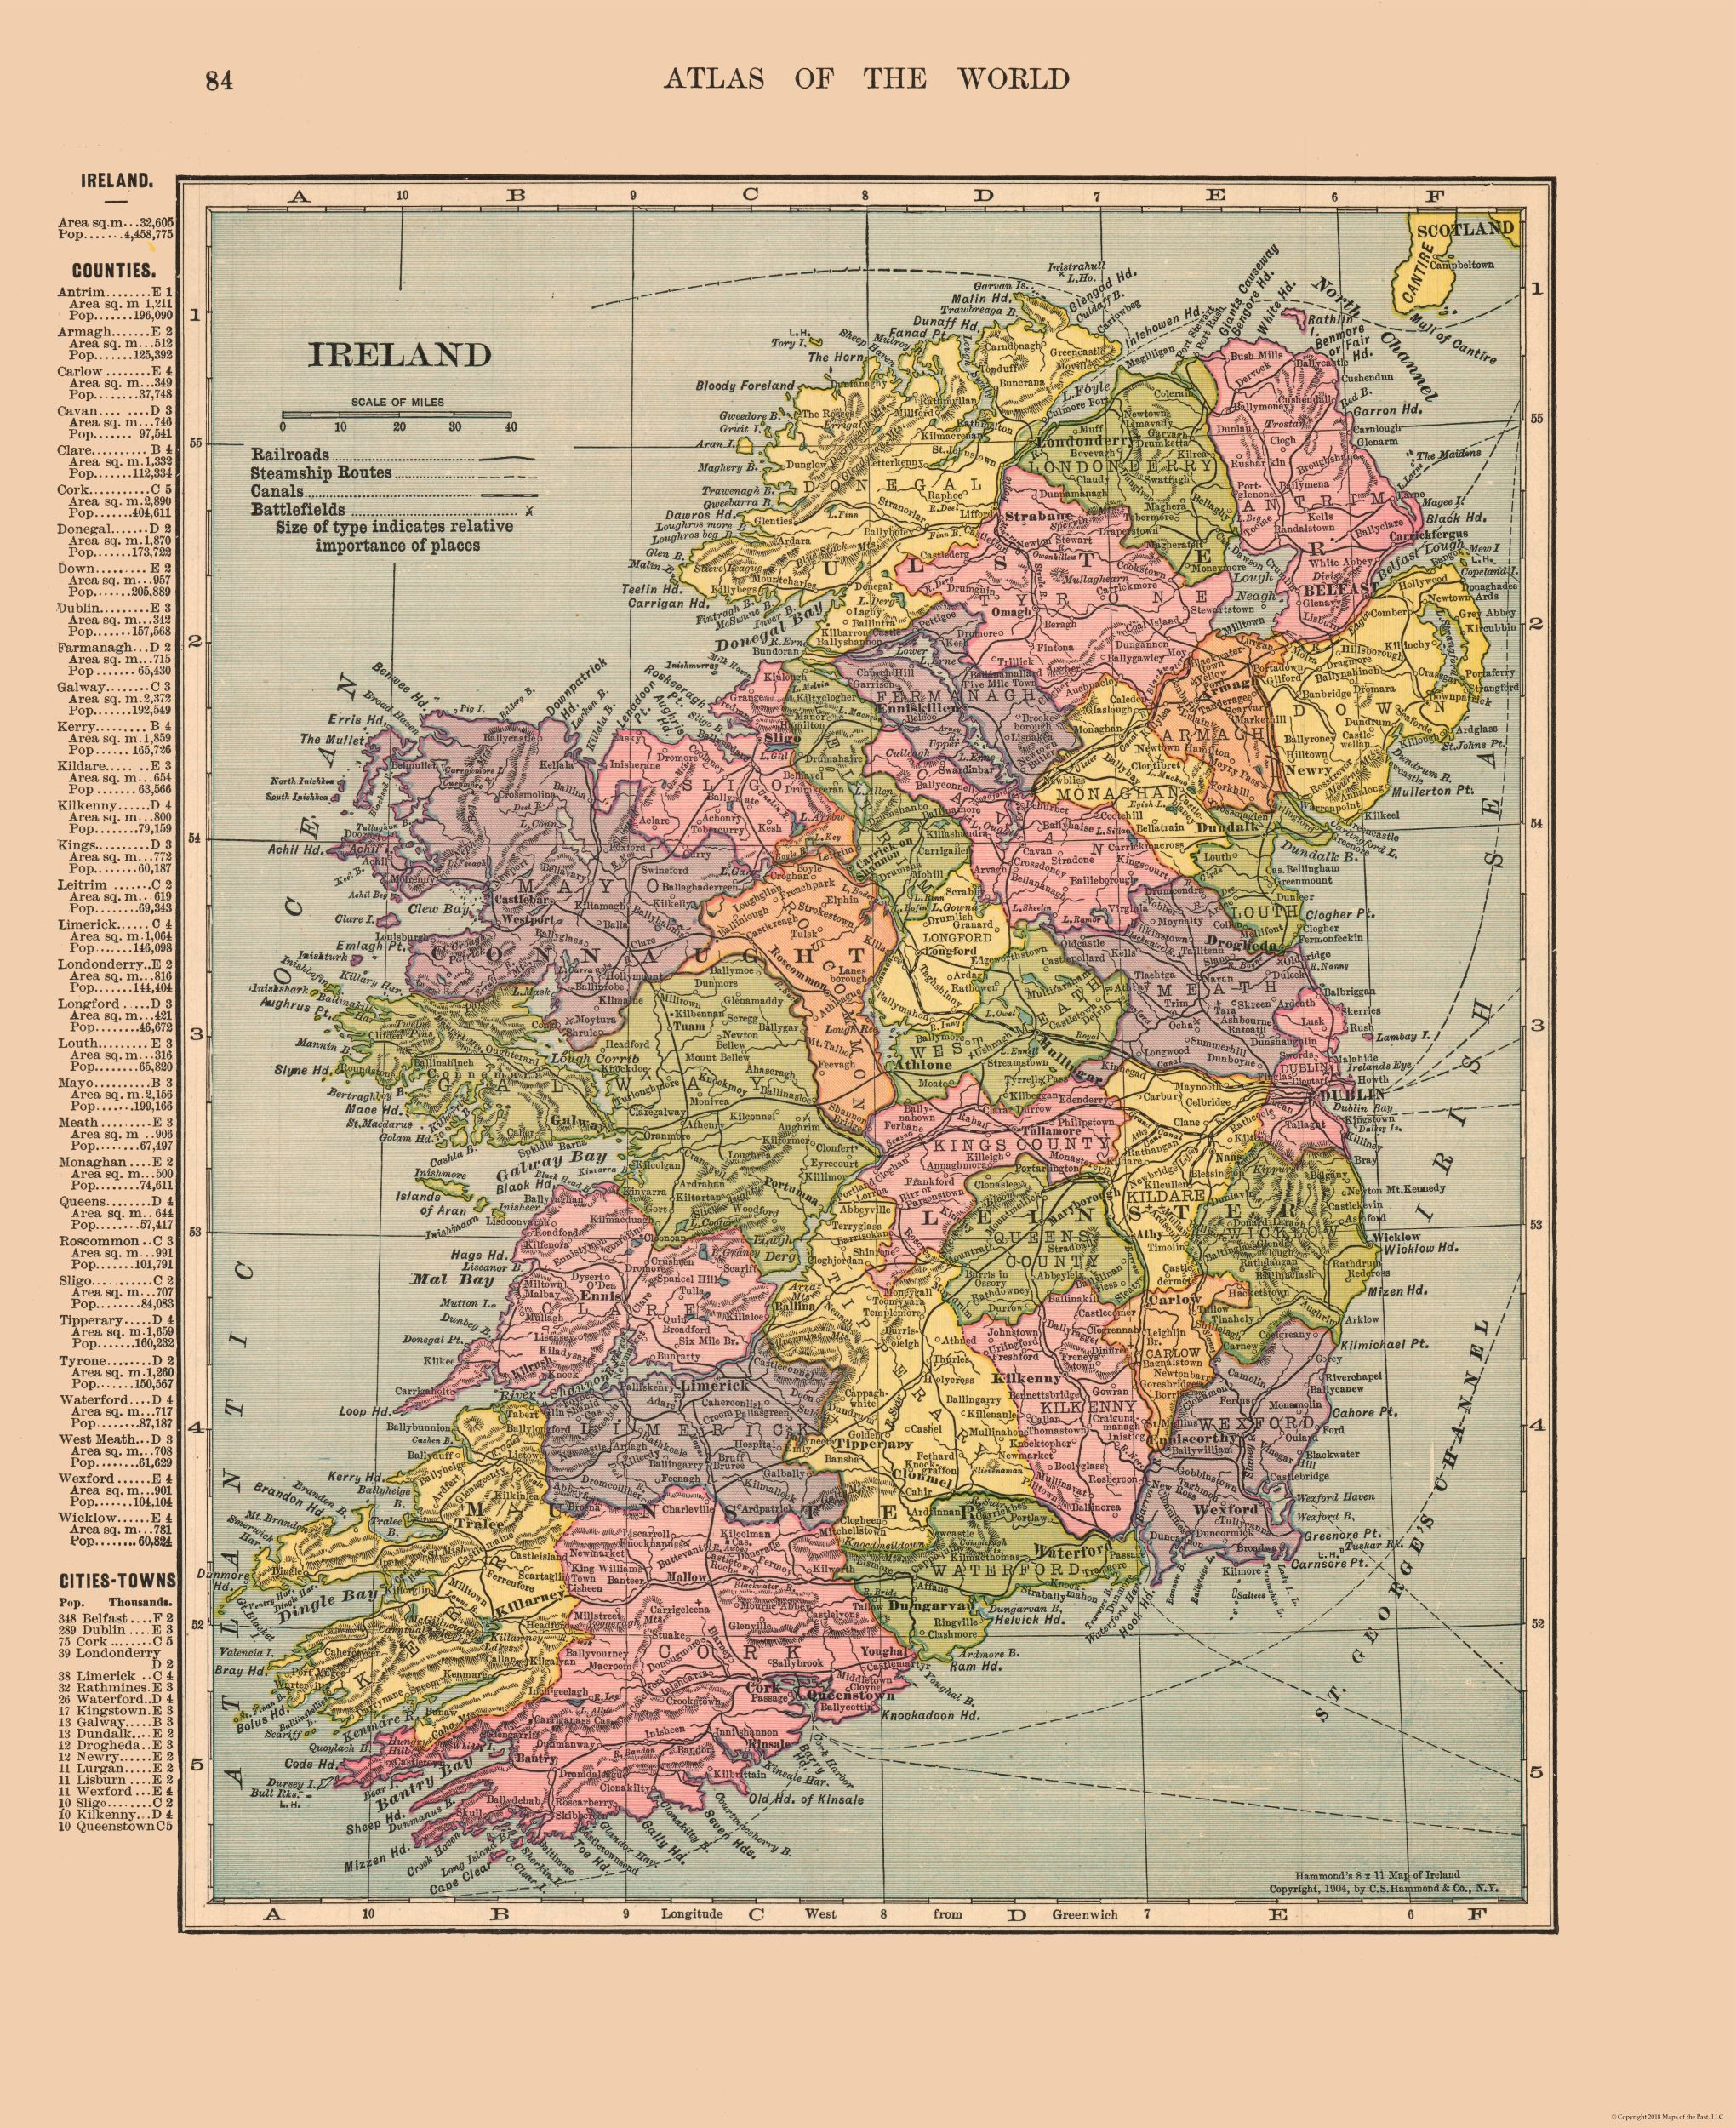 Full Map Of Ireland.Old International Maps Ireland Hammond S Atlas 1910 23 X 28 19